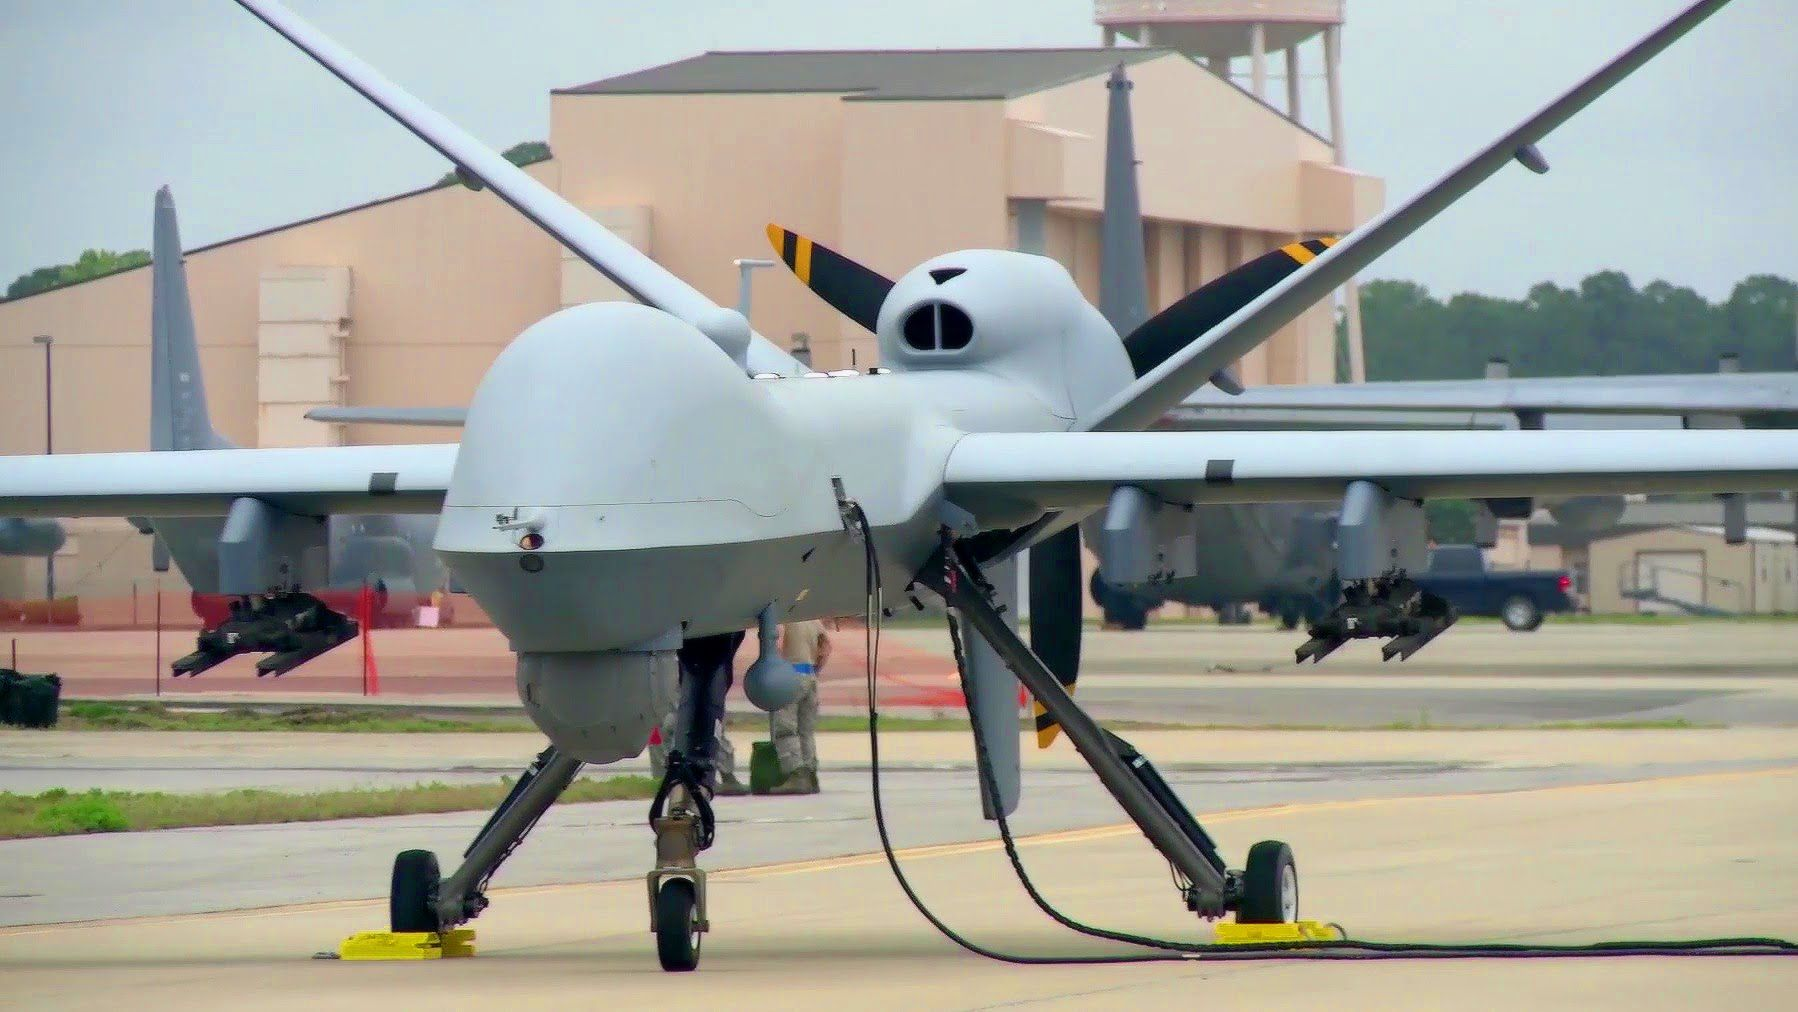 Awesome Military Drone Up Close View Of The MQ 9 Reaper UAV Check